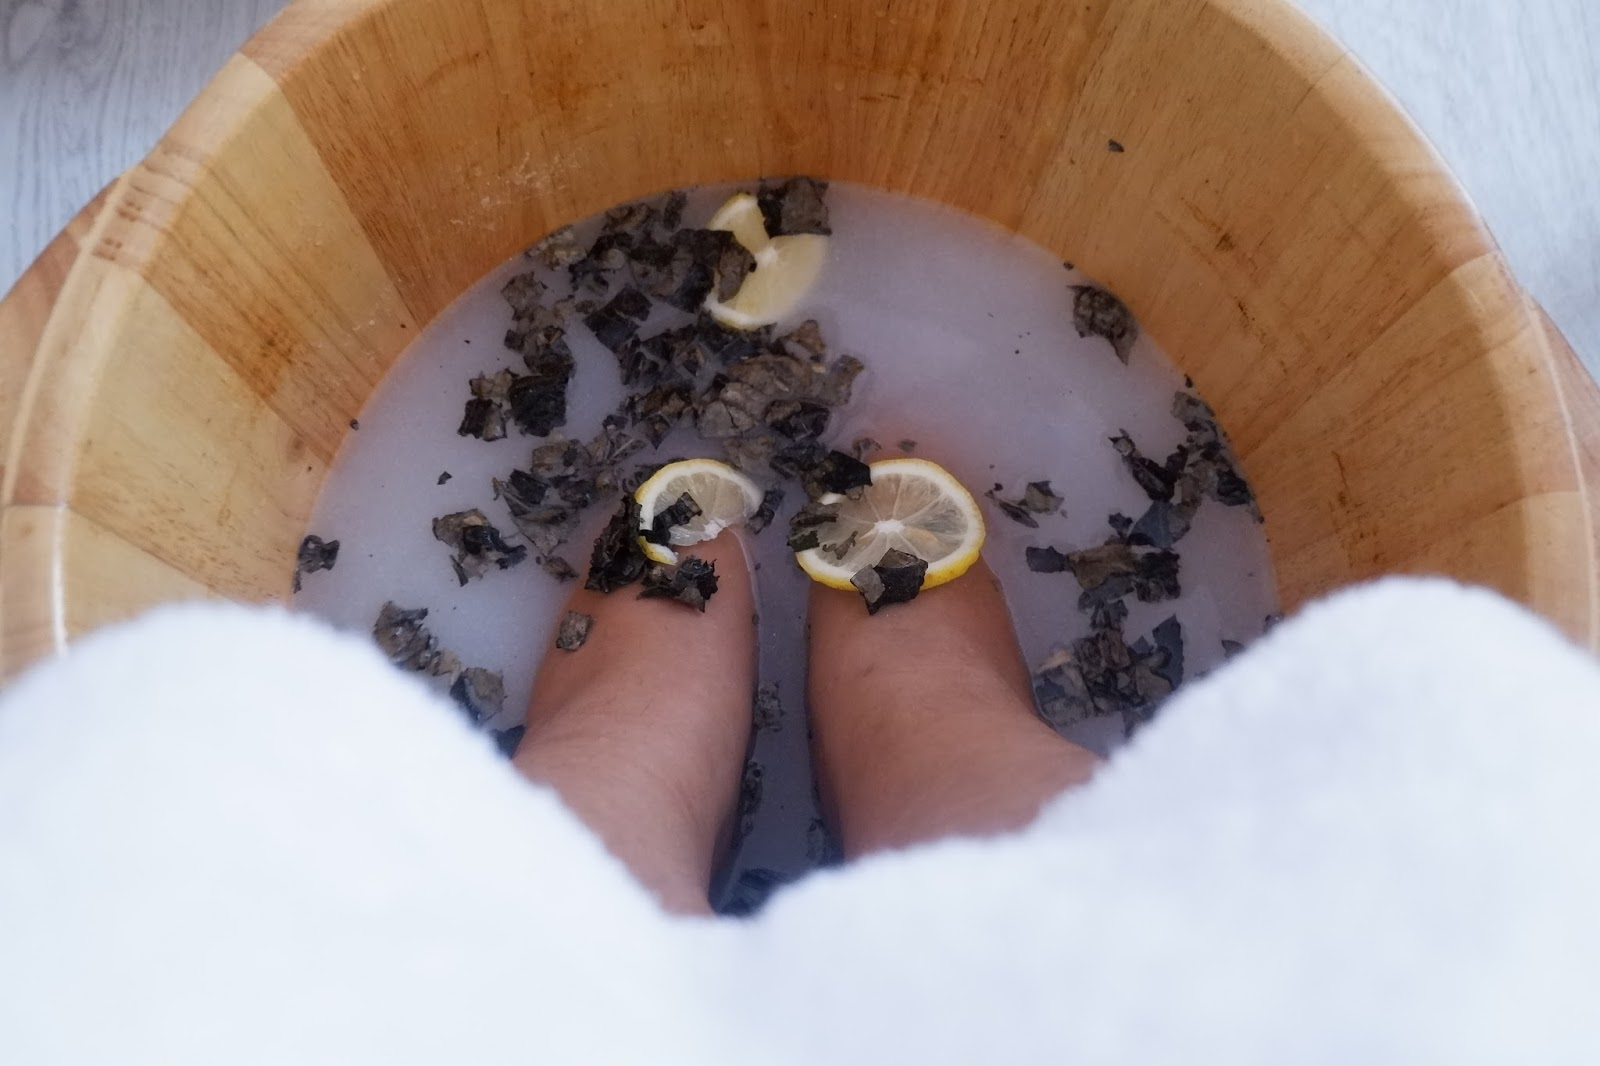 HOPE HAND AND FOOT WELLNESS: SUGAR, SPICE AND EVERYTHING NICE TREATMENT EXPERIENCED